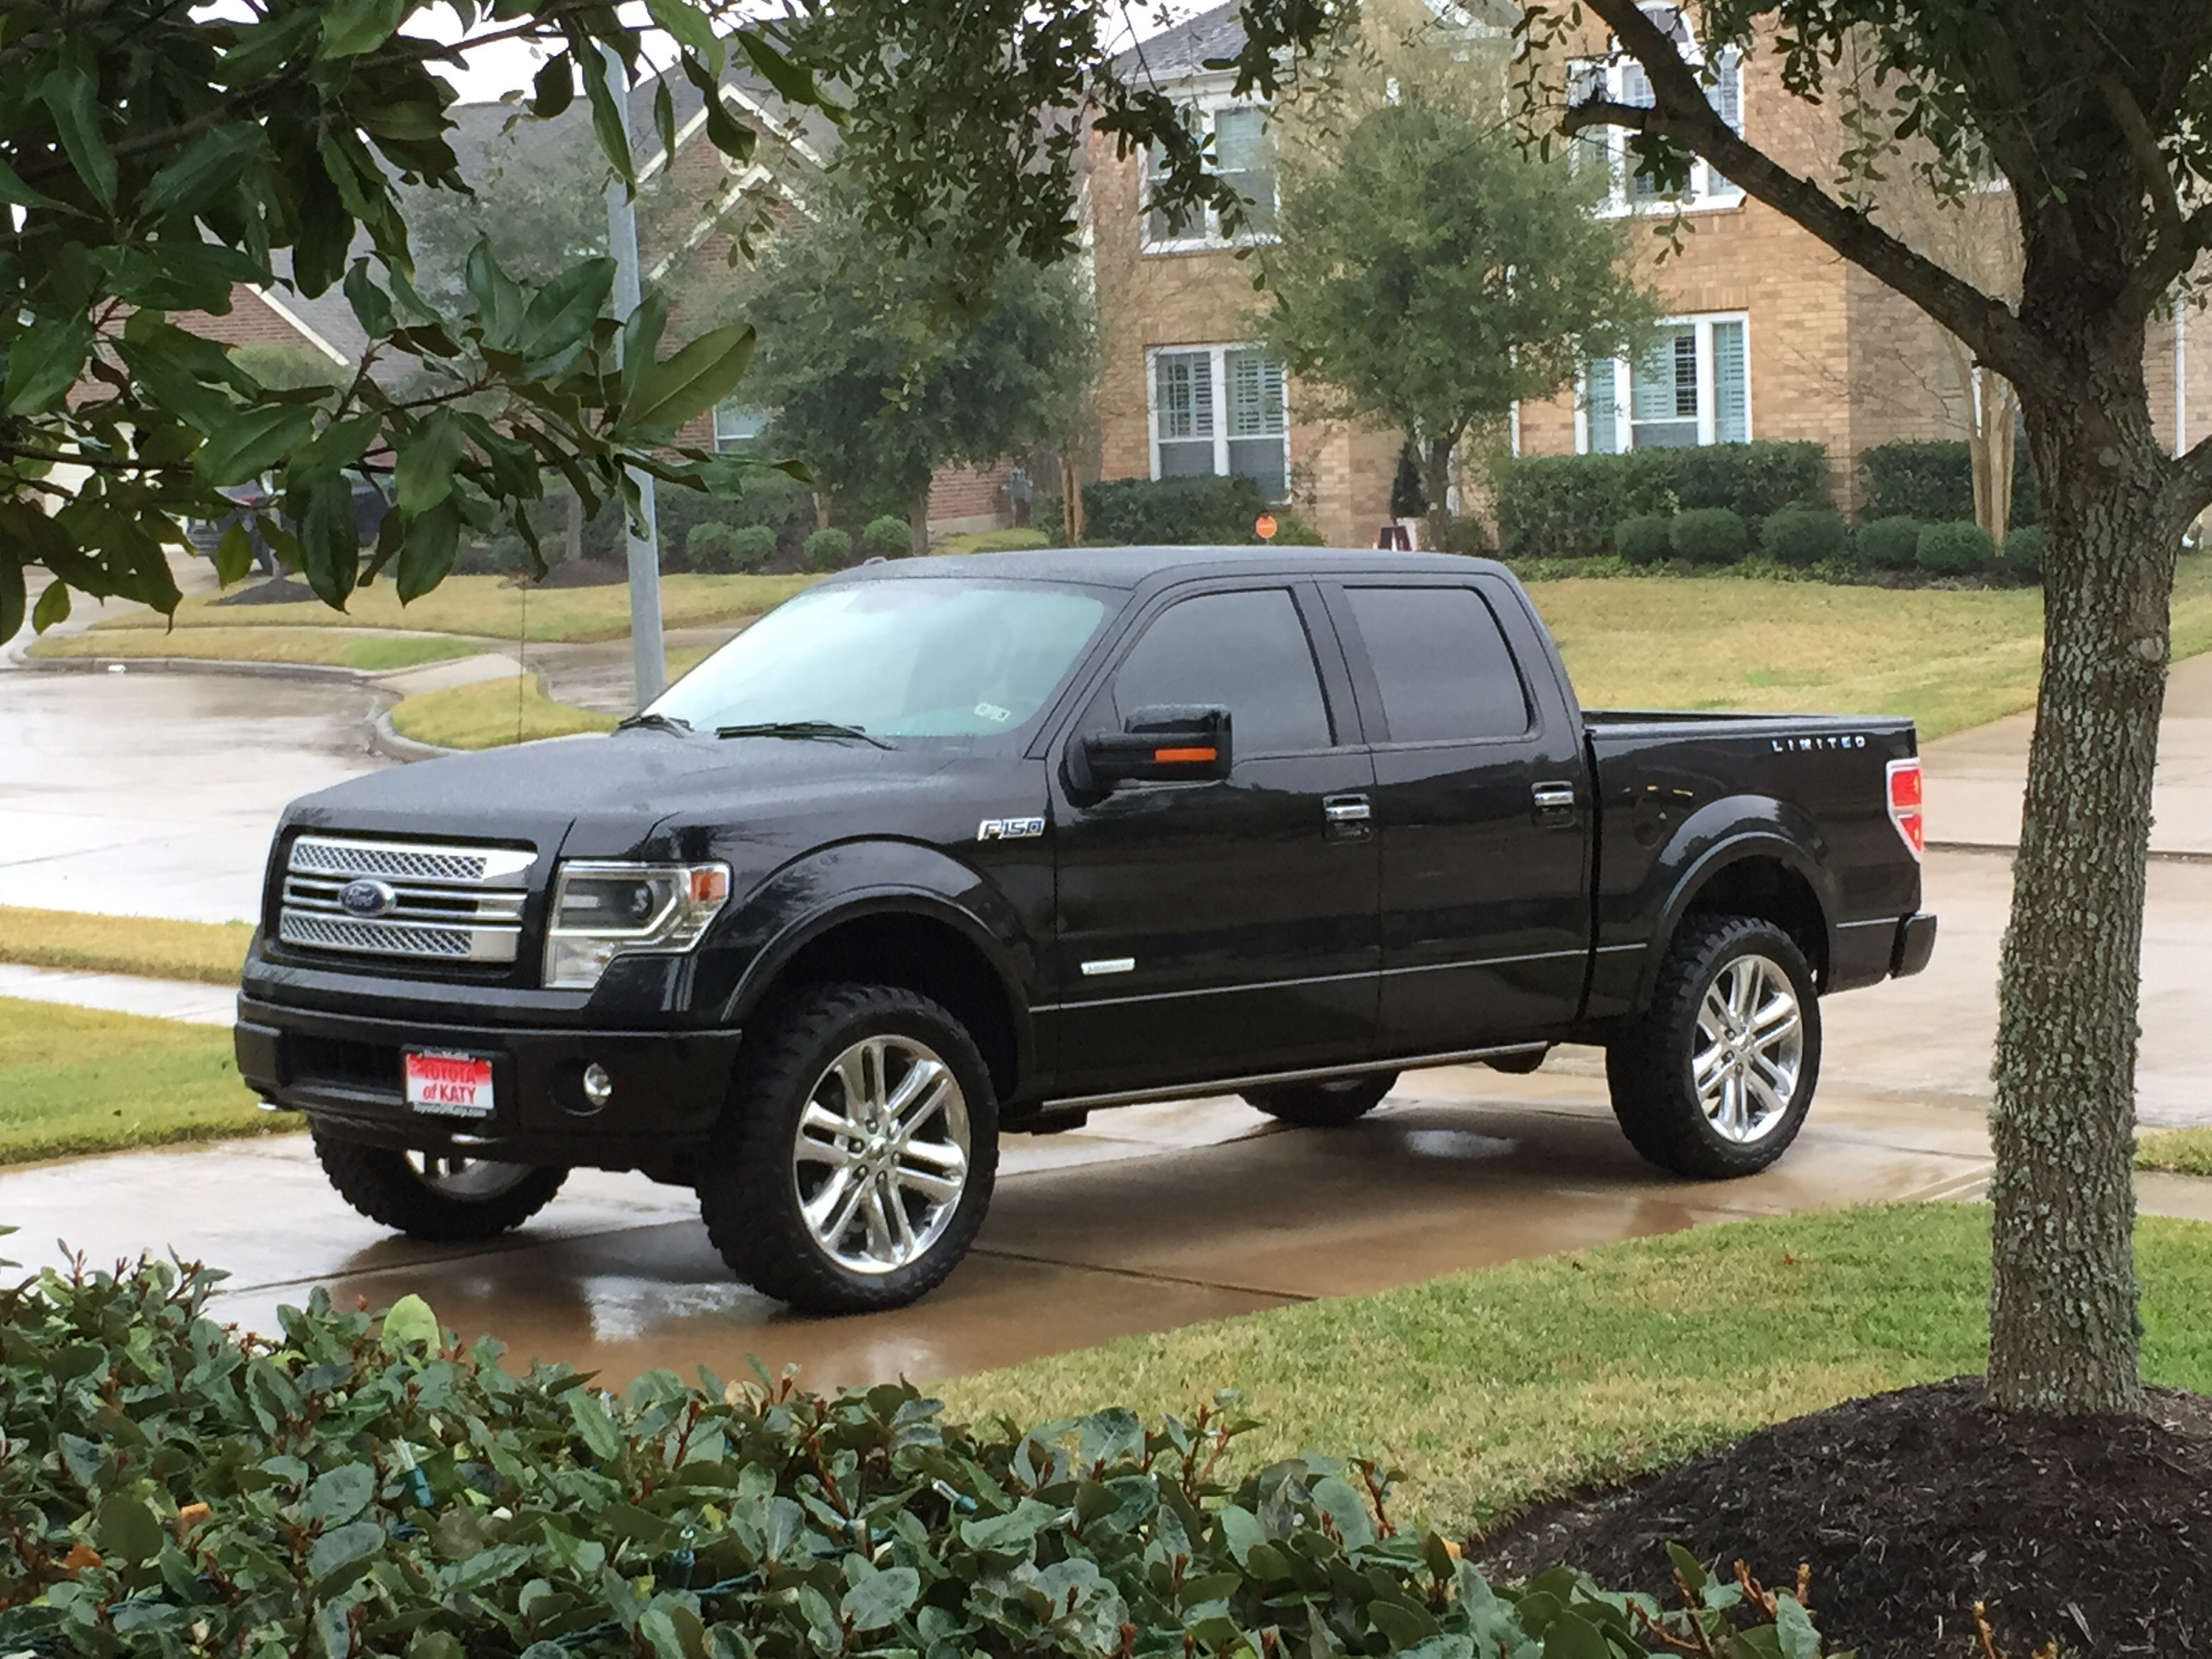 New 2014 eco boost f150 limited owner